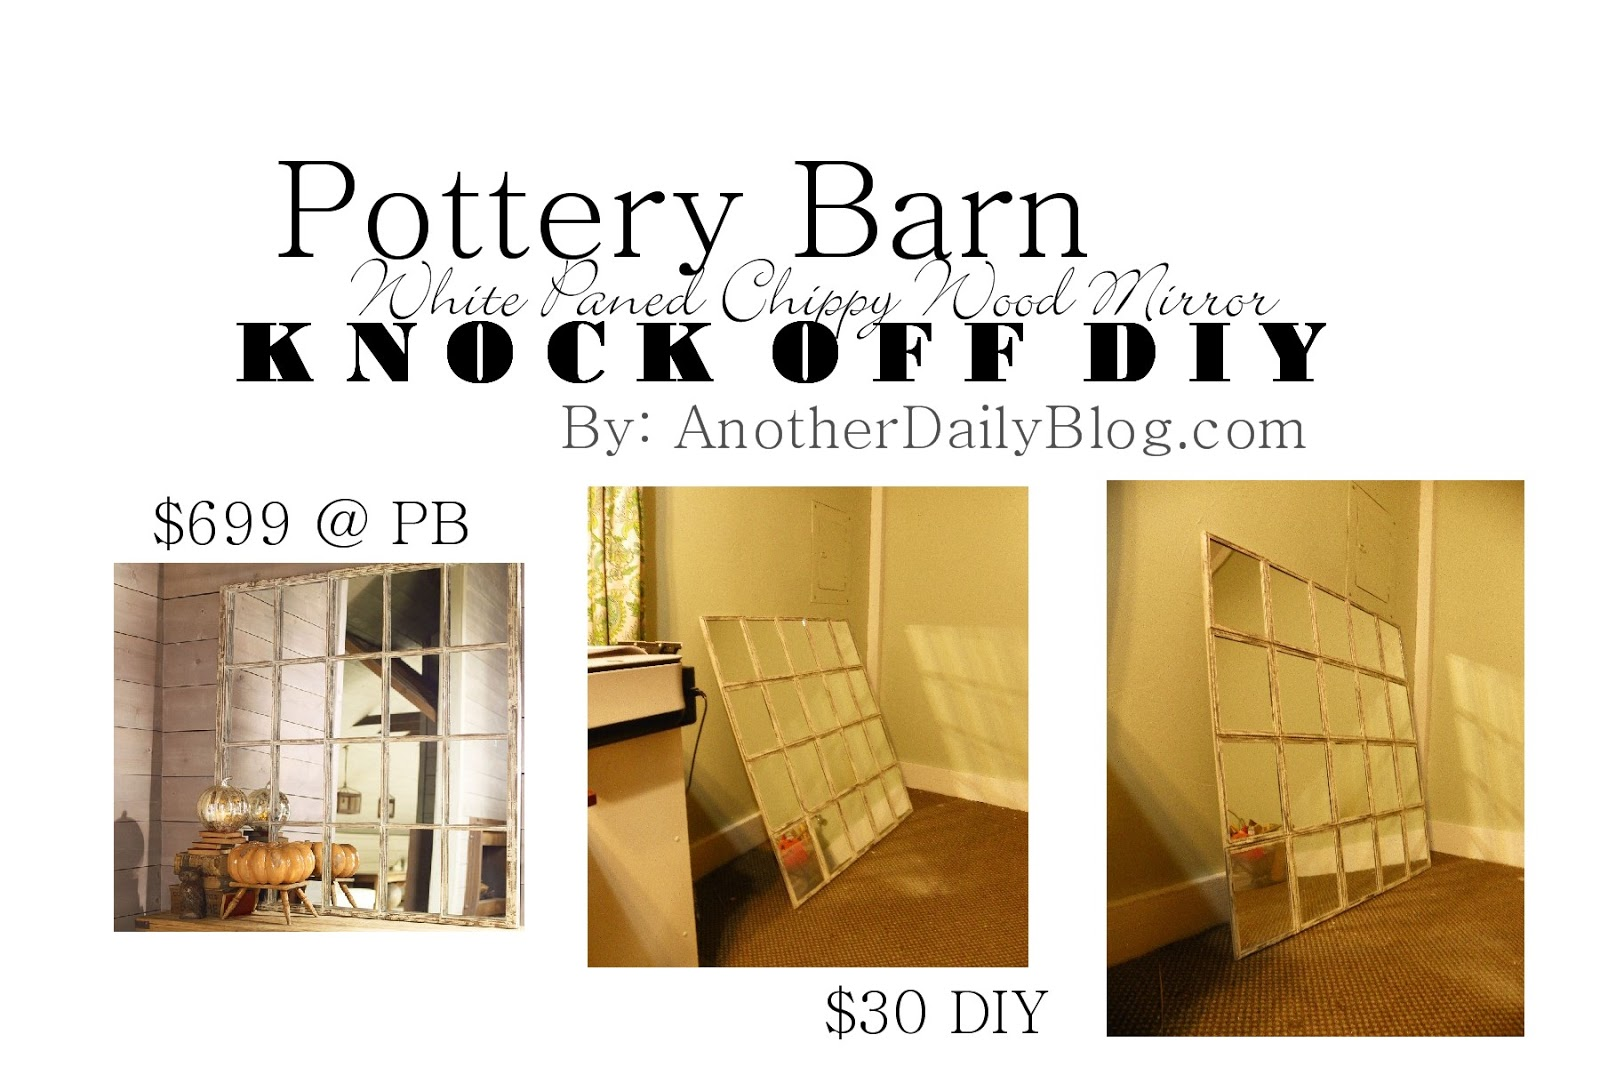 Another Daily Blog Diy Projects